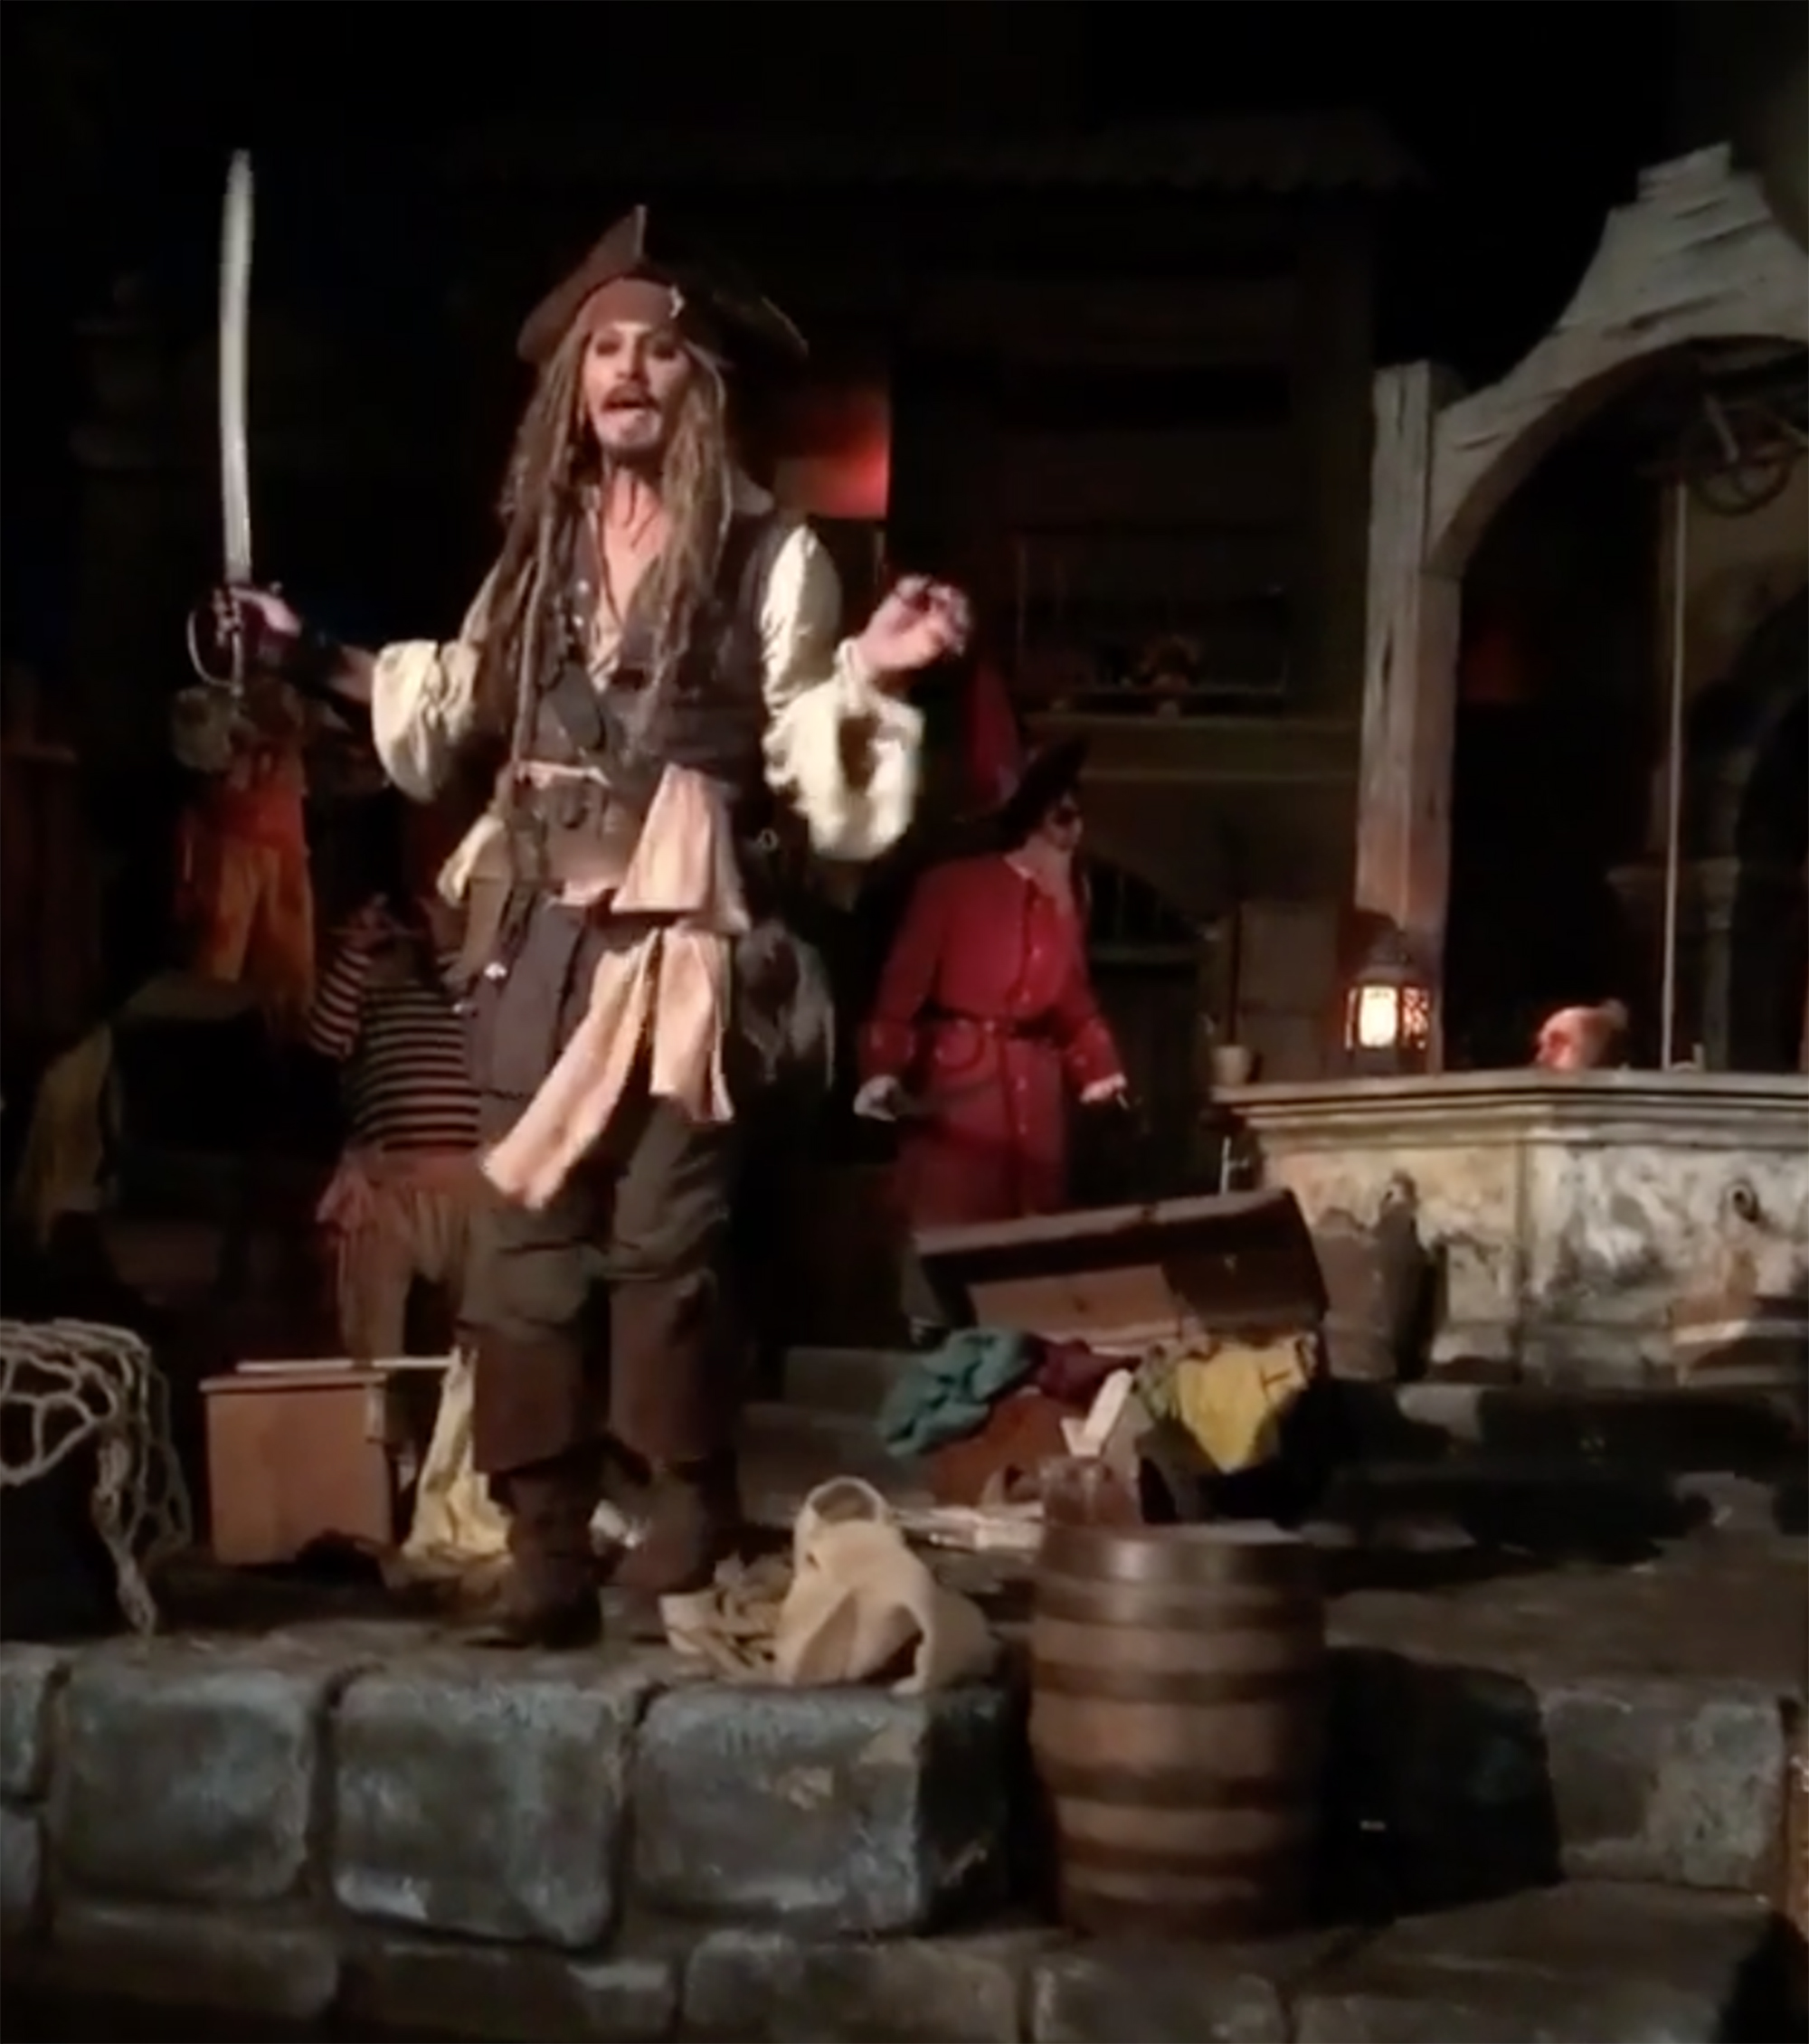 Johnny Depp Turns Up At Disneyland As Capt. Jack Sparrow (and Fans Lose It)  | CNN Travel